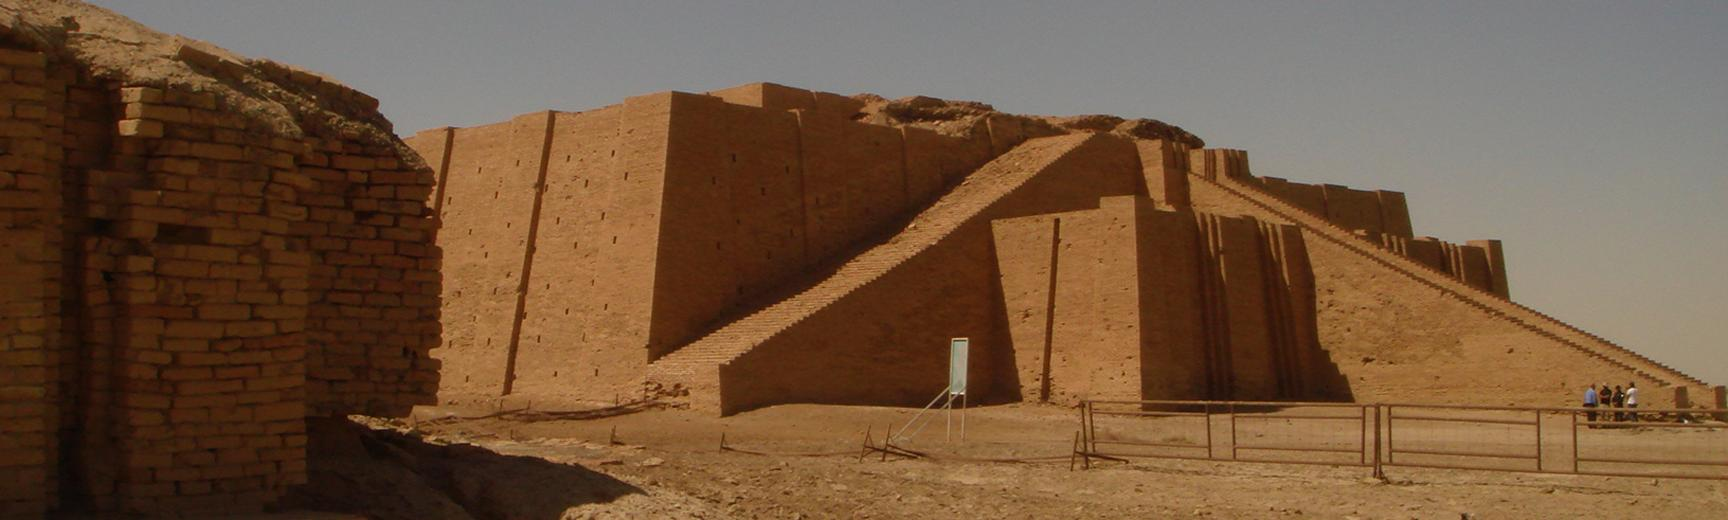 The ziggurat at Ur